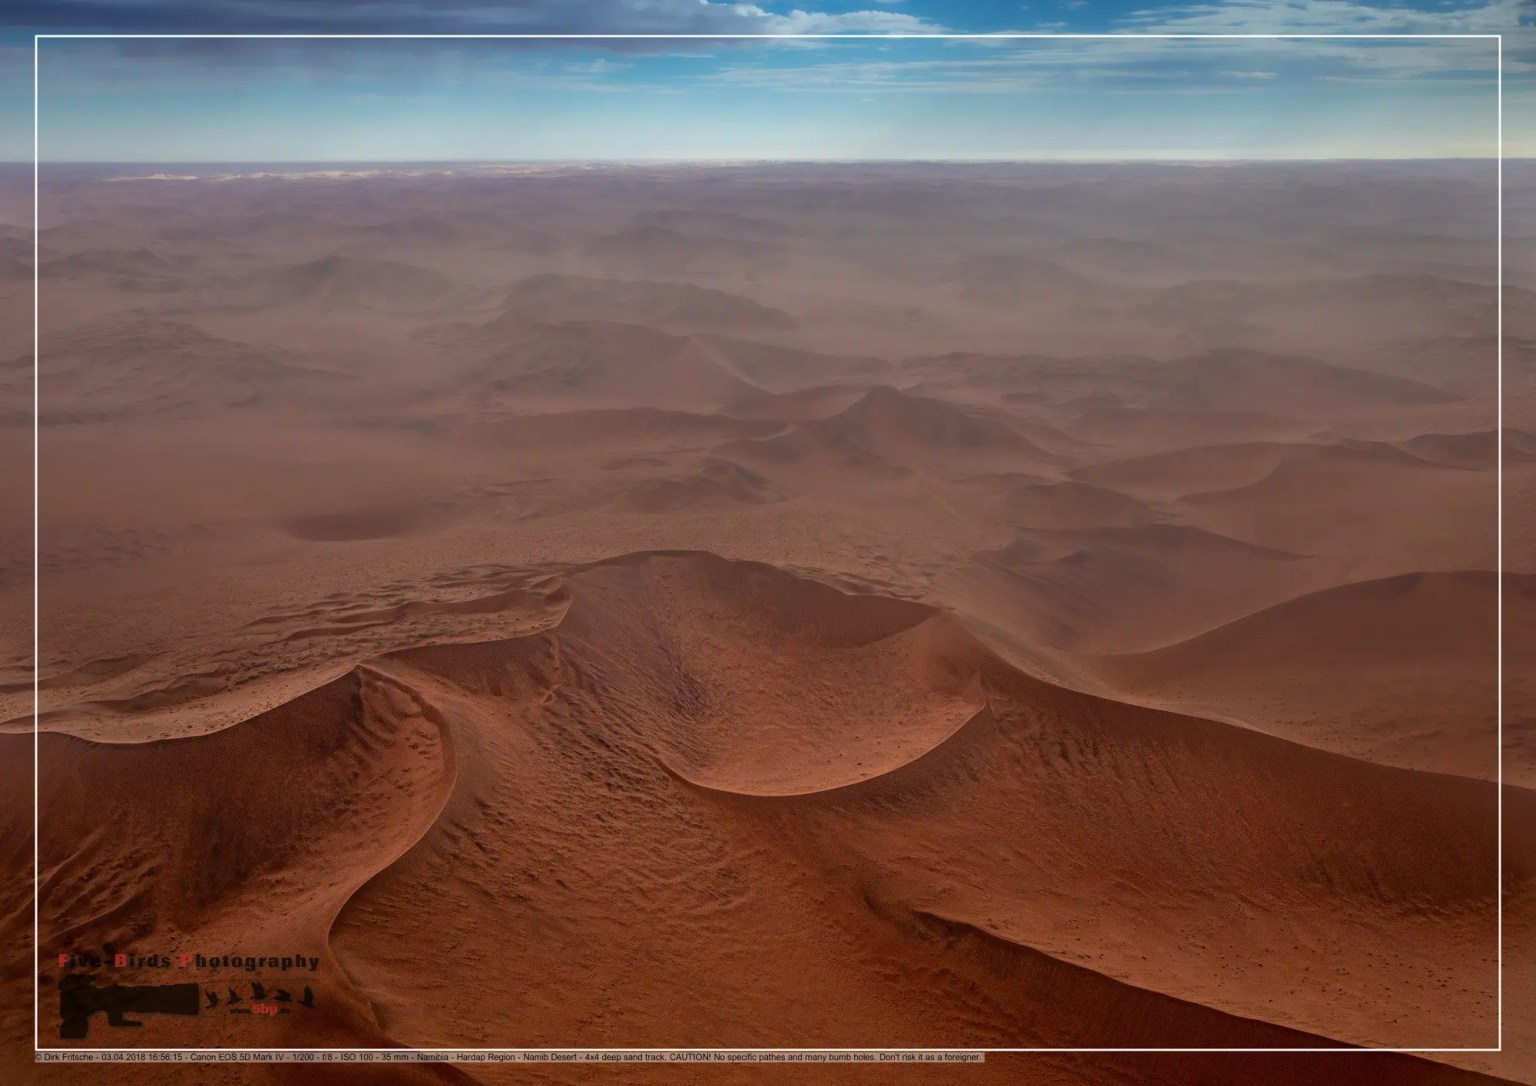 Aerial picture of the landscape of the Namib Desert in western Namibia